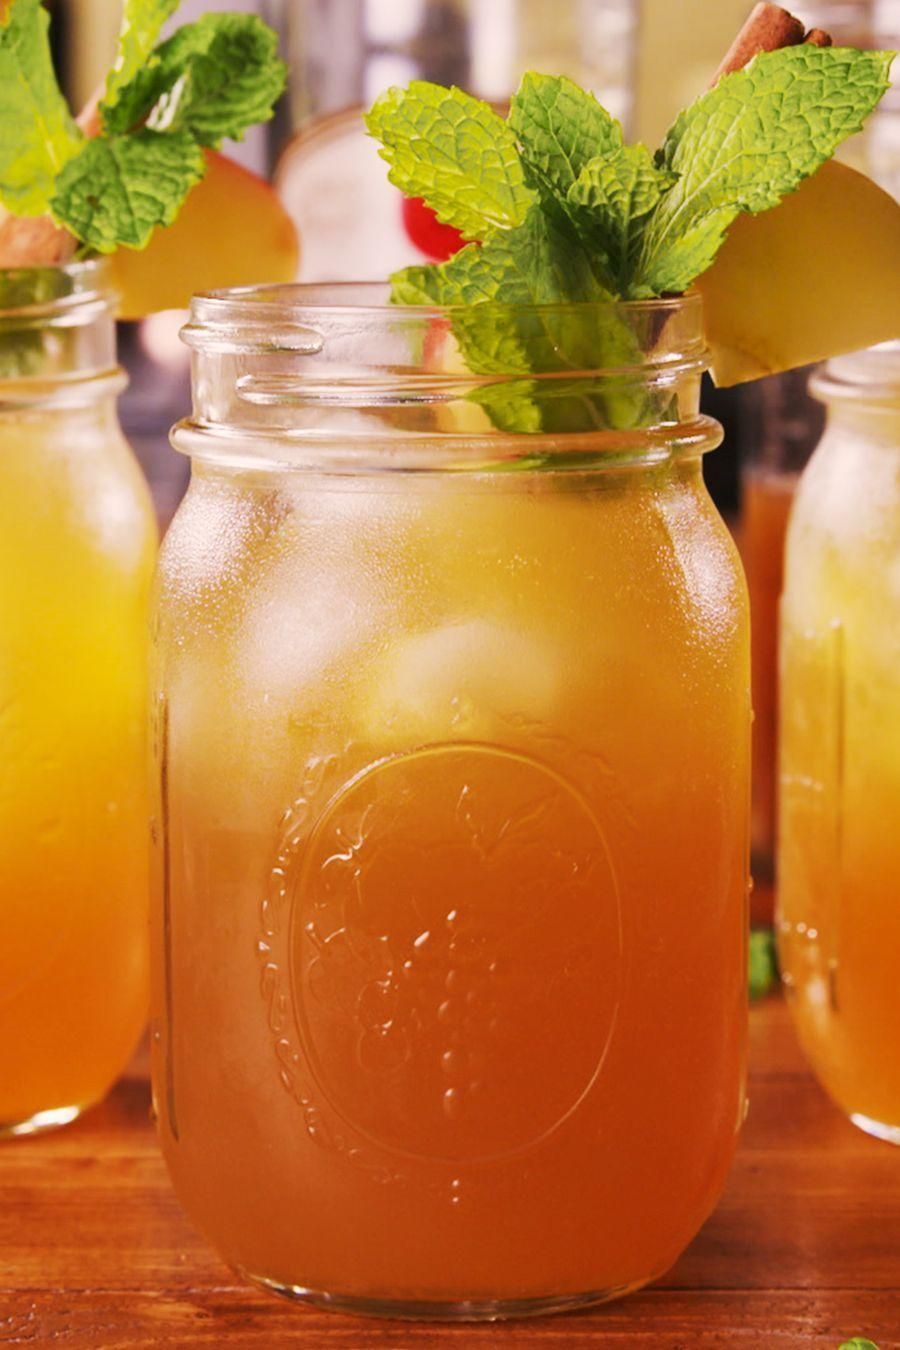 """<p>A little apple cider turns a summer Mojito into the perfect fall refresher.</p><p><em><a href=""""https://www.delish.com/cooking/a23581354/apple-cider-mojitos-recipe/"""" rel=""""nofollow noopener"""" target=""""_blank"""" data-ylk=""""slk:Get the recipe from Delish »"""" class=""""link rapid-noclick-resp"""">Get the recipe from Delish »</a></em></p>"""